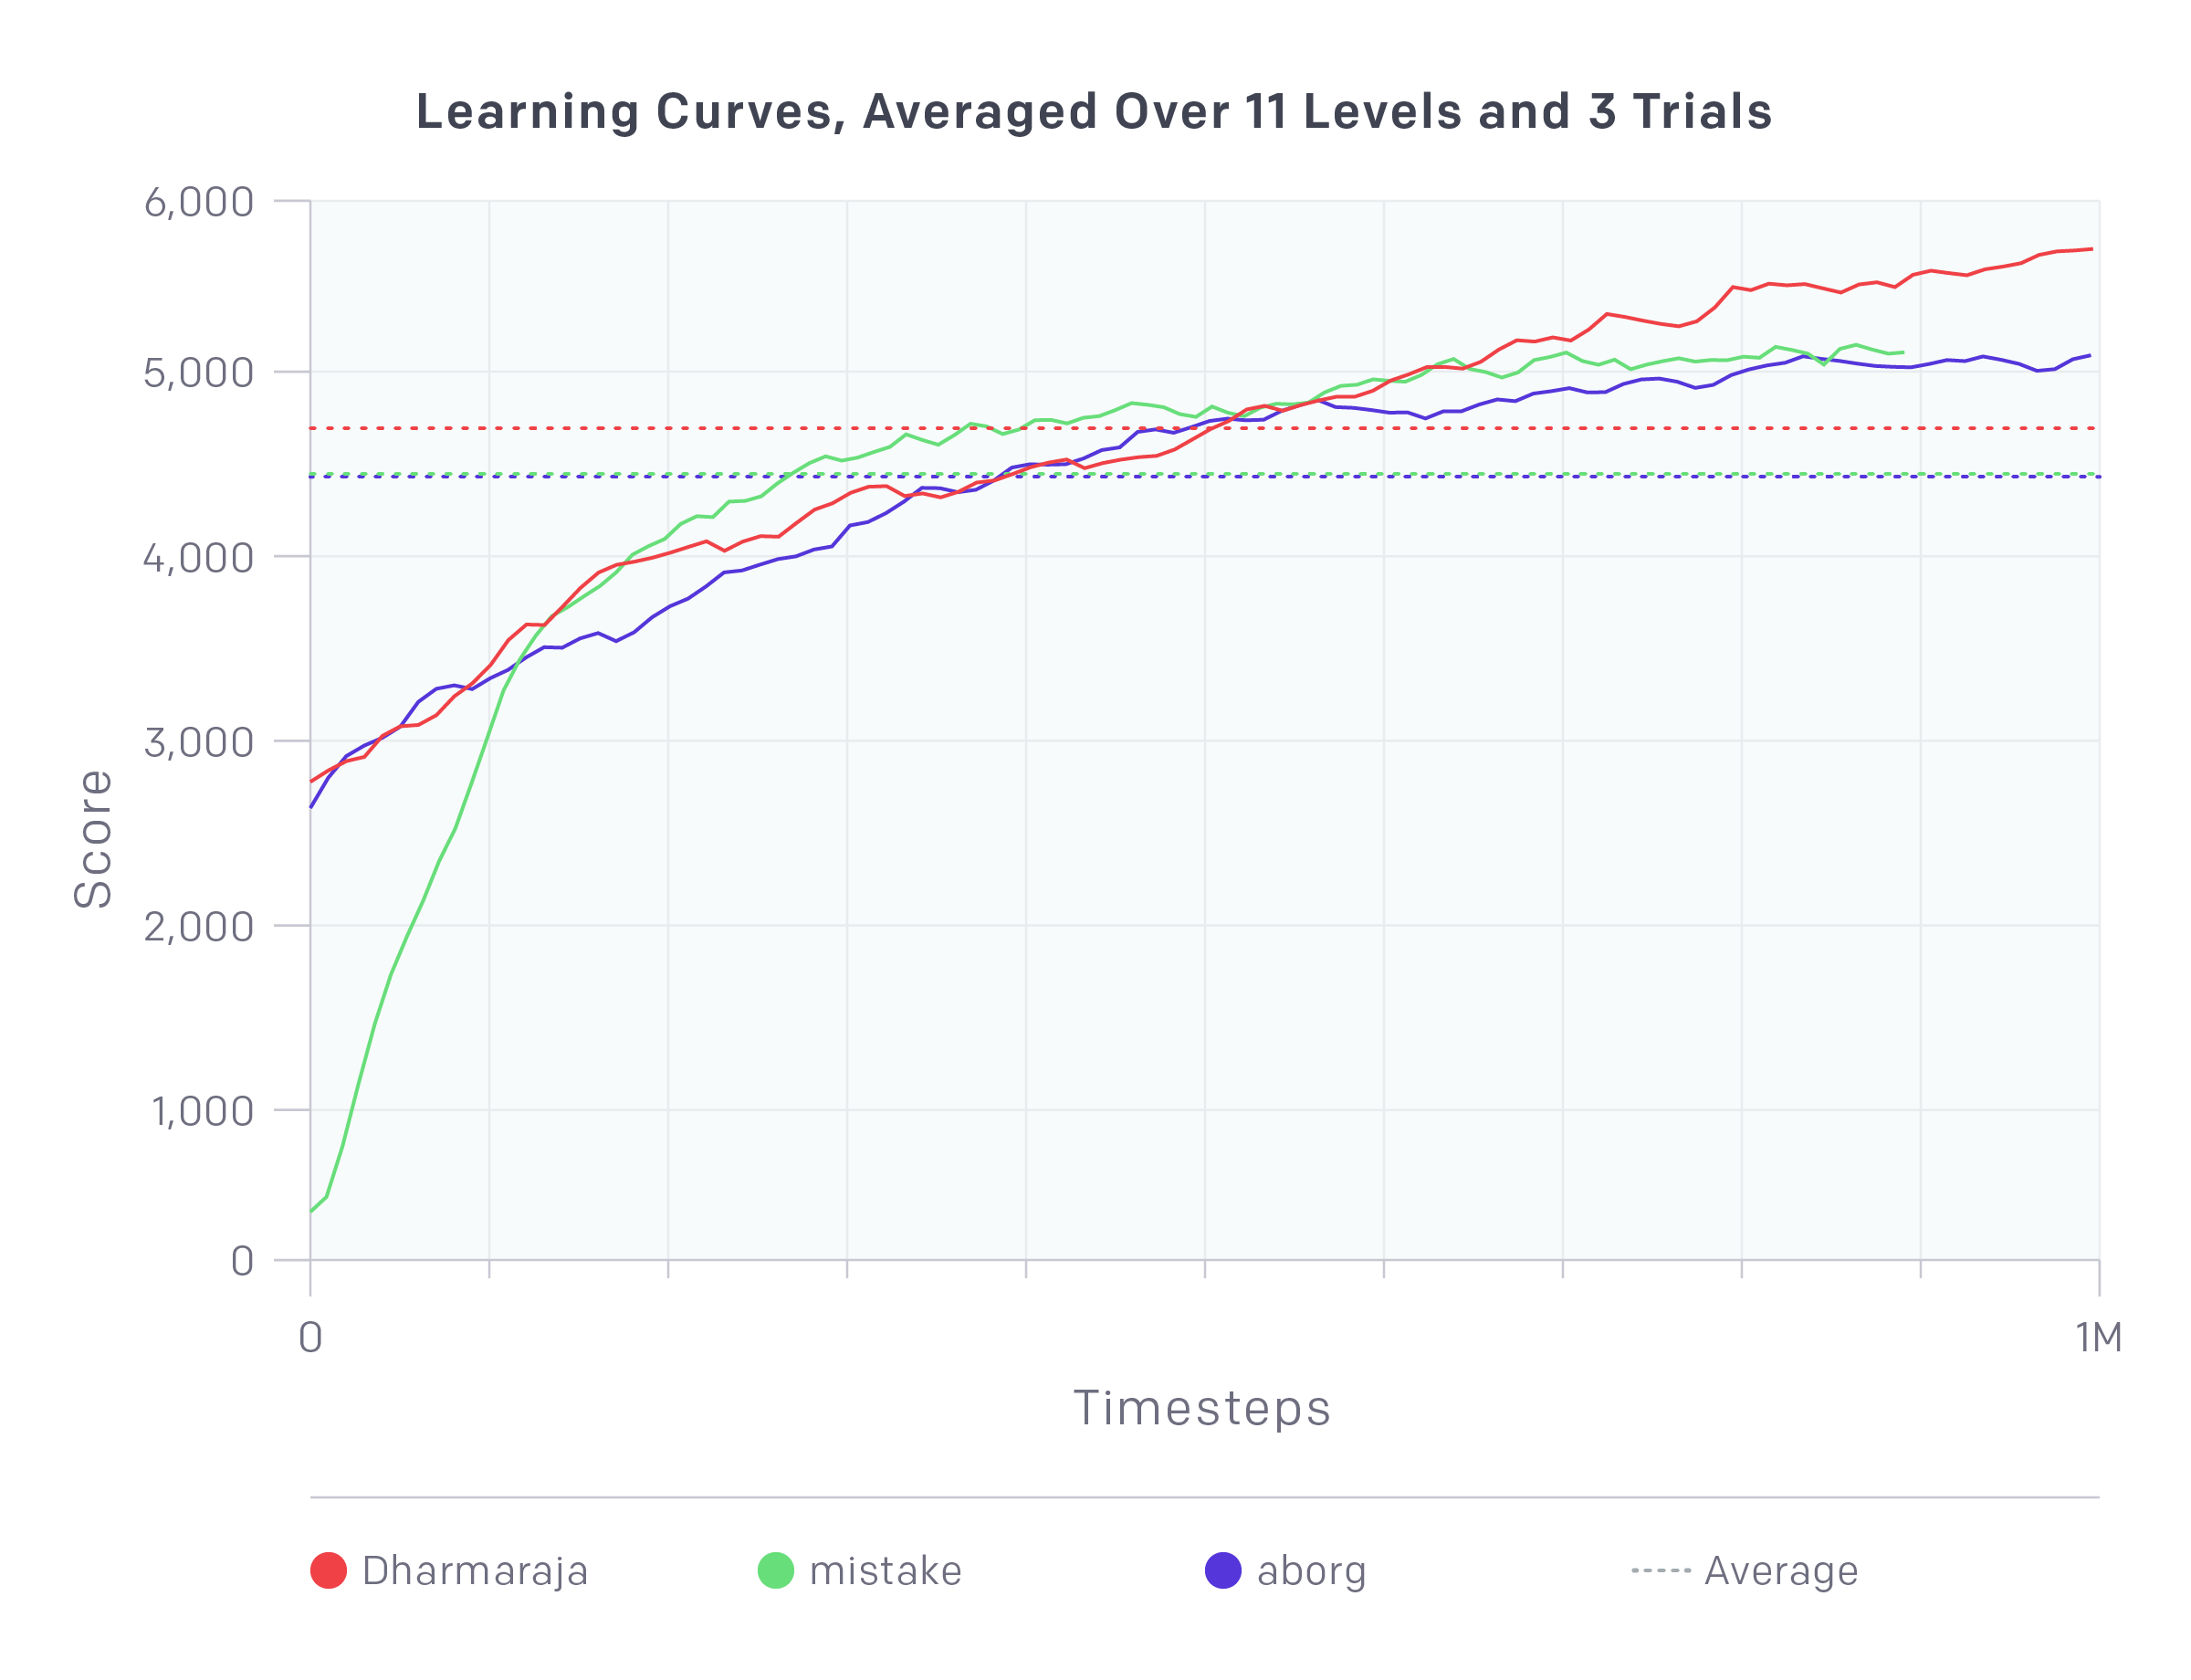 learning-curves-averaged-over-11-levels-and-3-trials@2x